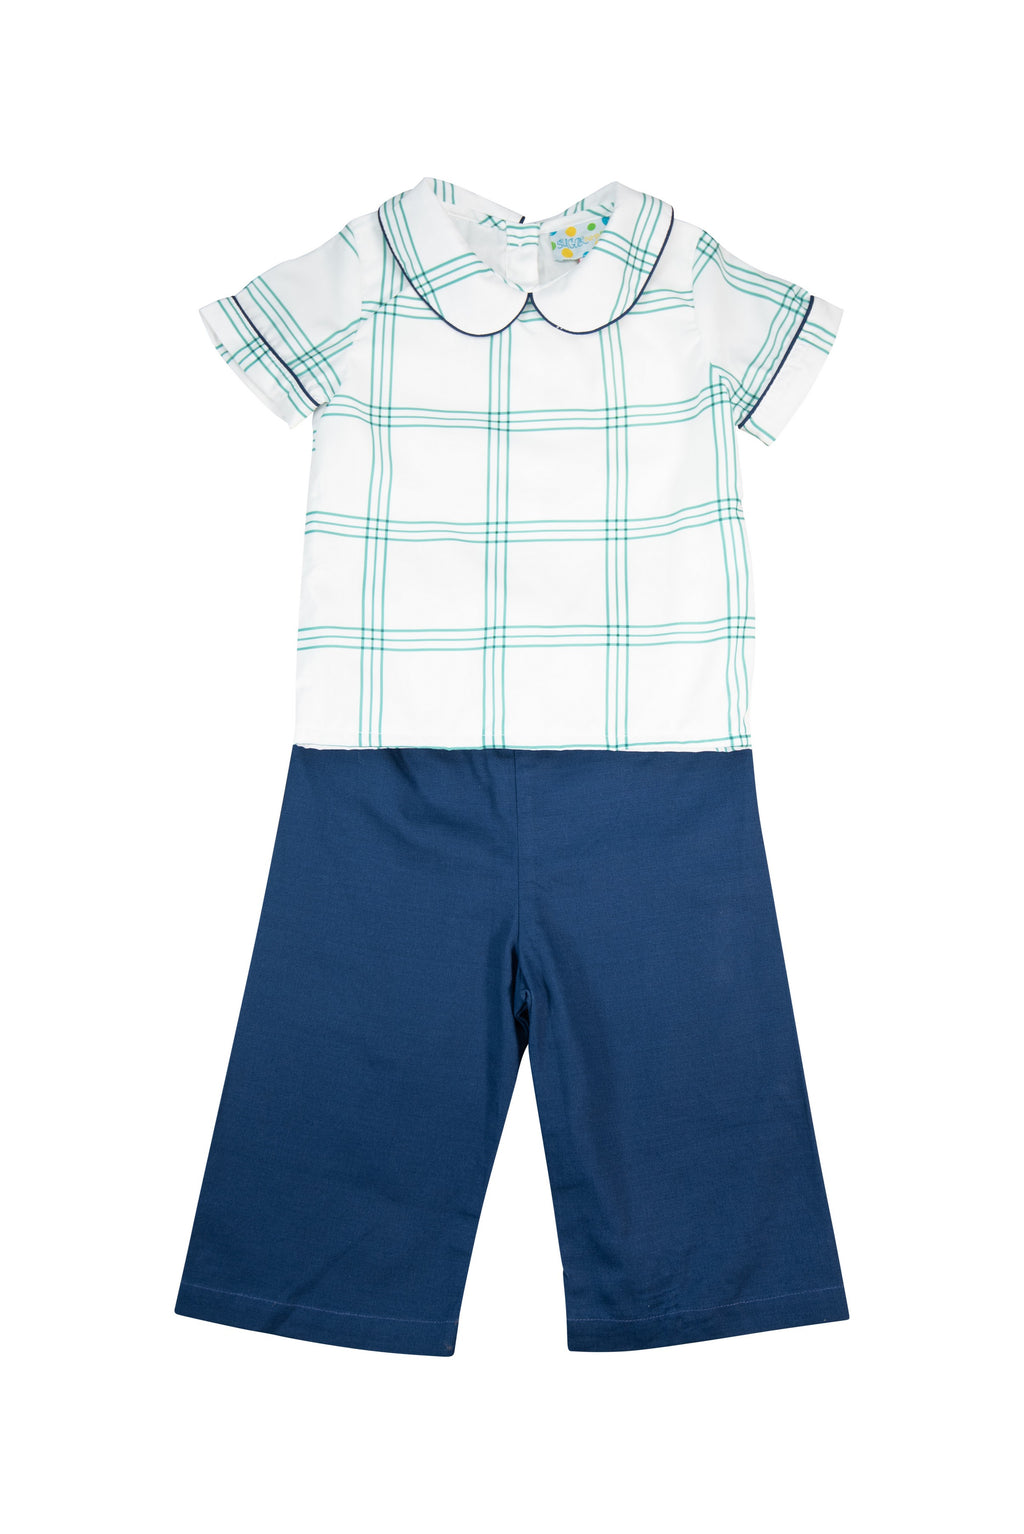 Boys Green and Navy Plaid Pant Set